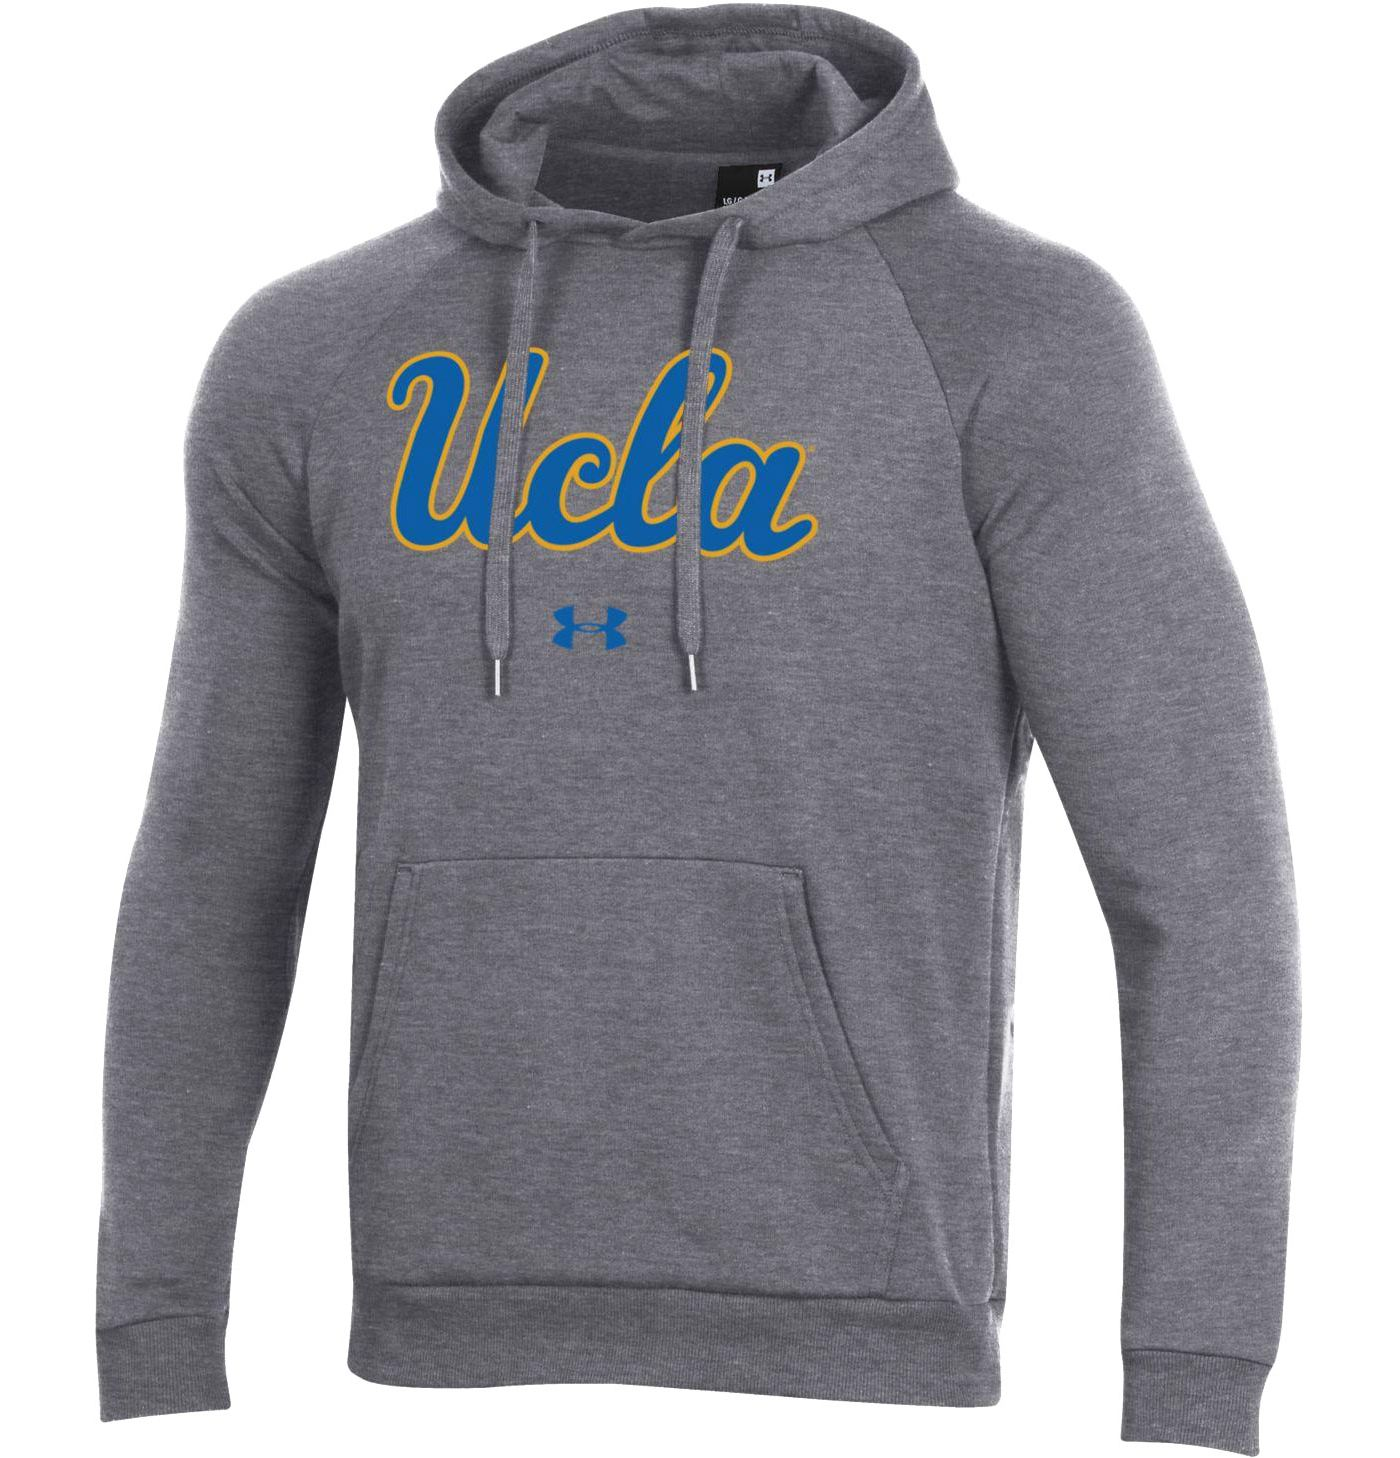 Under Armour Men's UCLA Bruins Grey All Day Hoodie